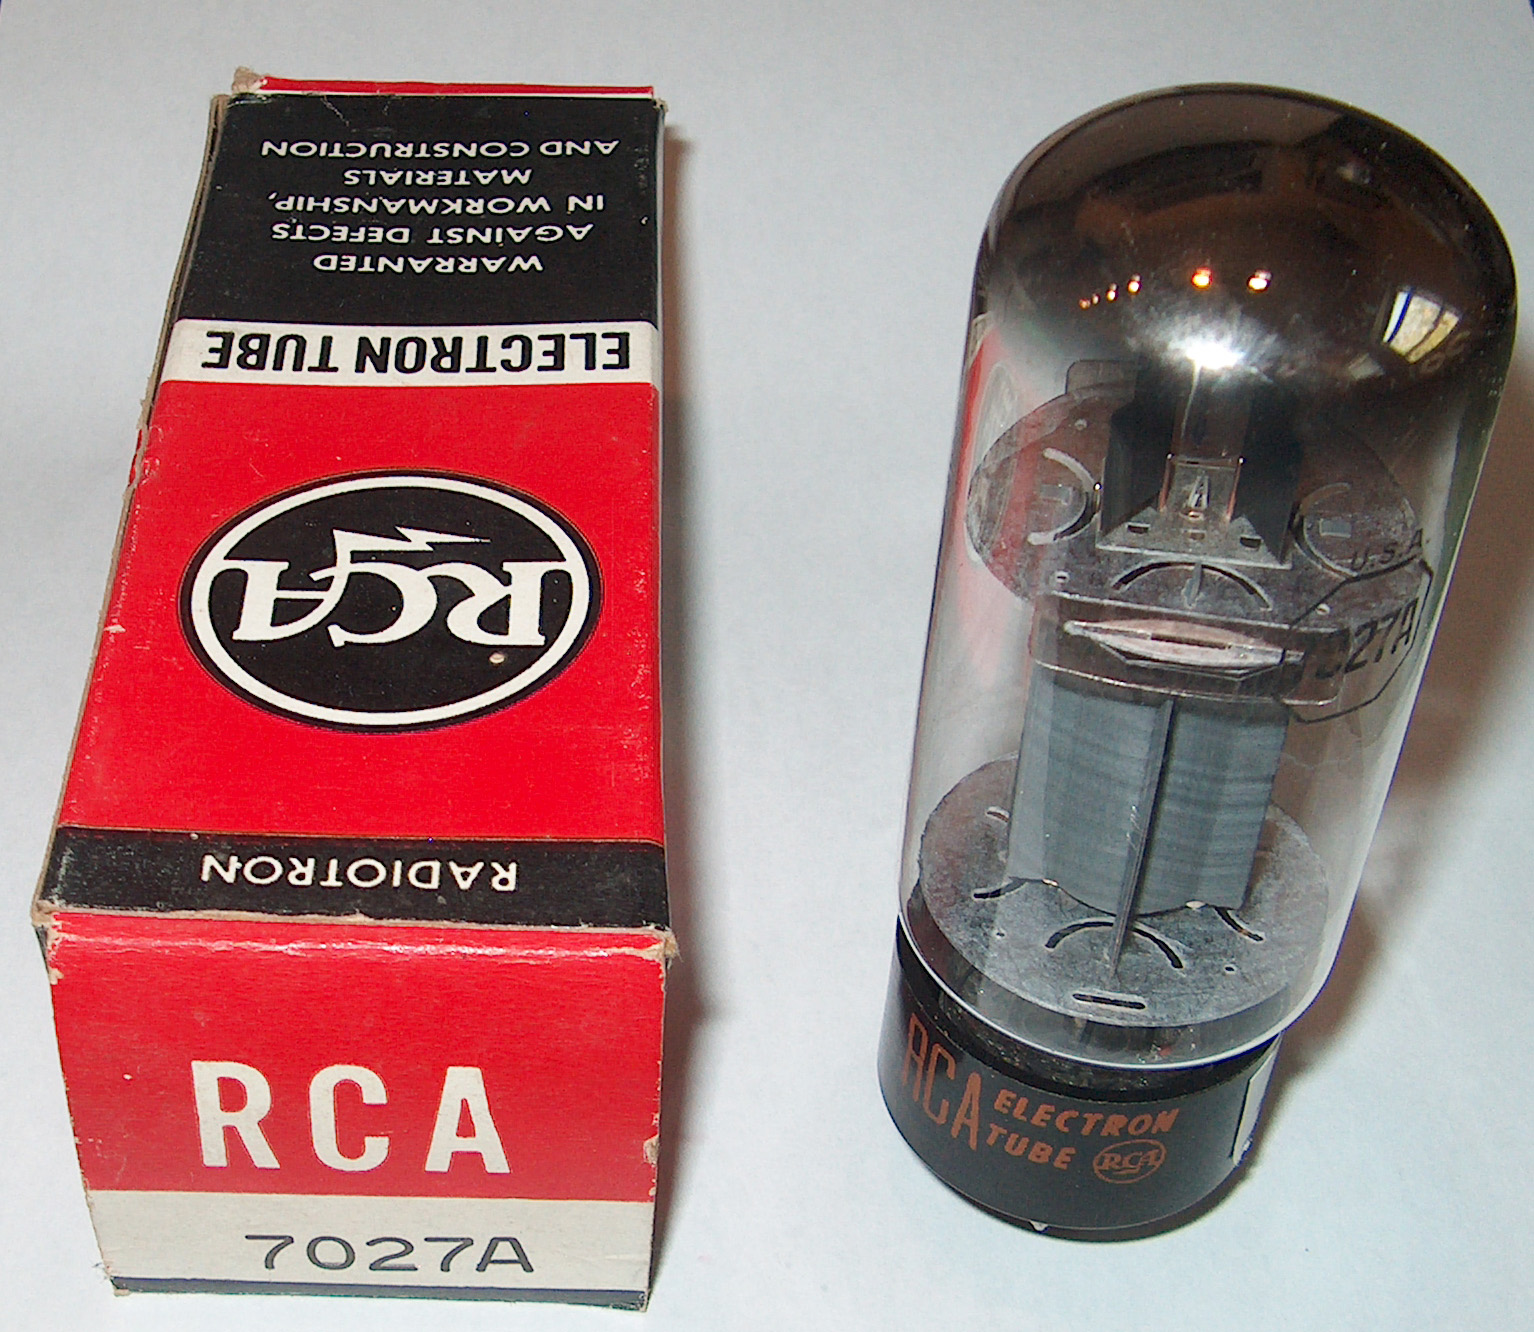 RCA 7027A TALL BOTTLE NOS USA